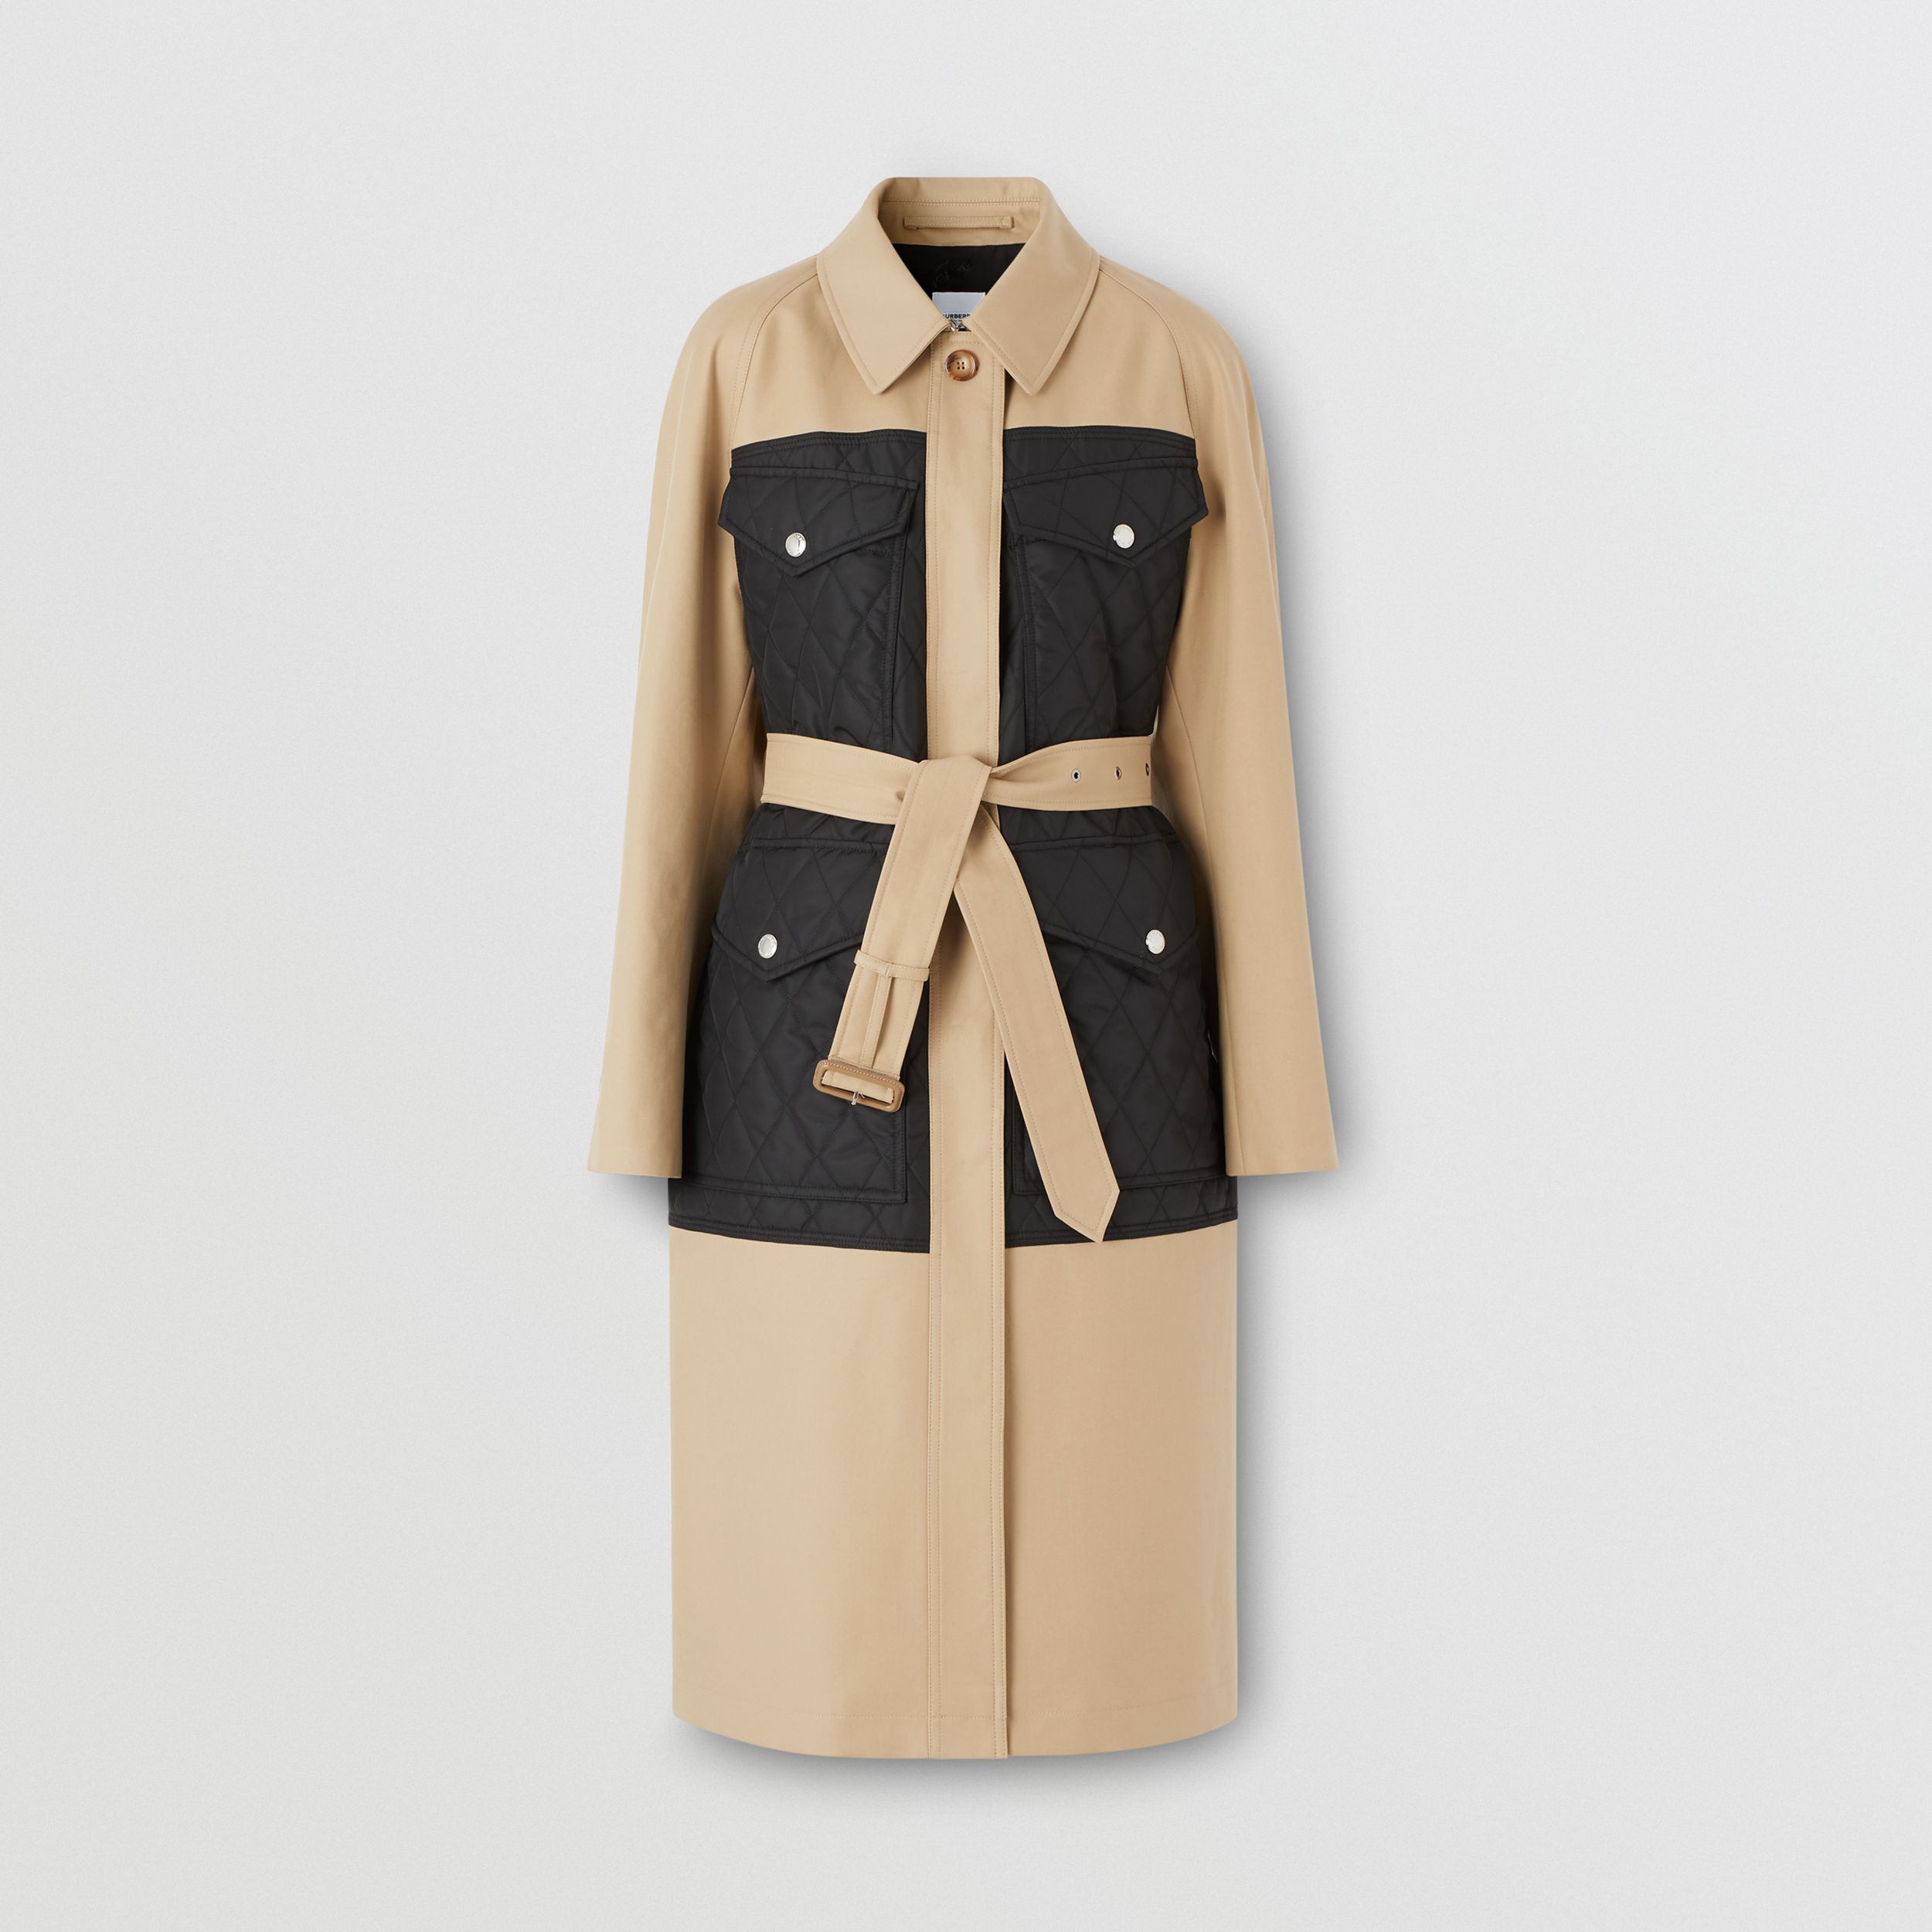 Diamond Quilted Panel Cotton Gabardine Car Coat in Honey - Women | Burberry - 4